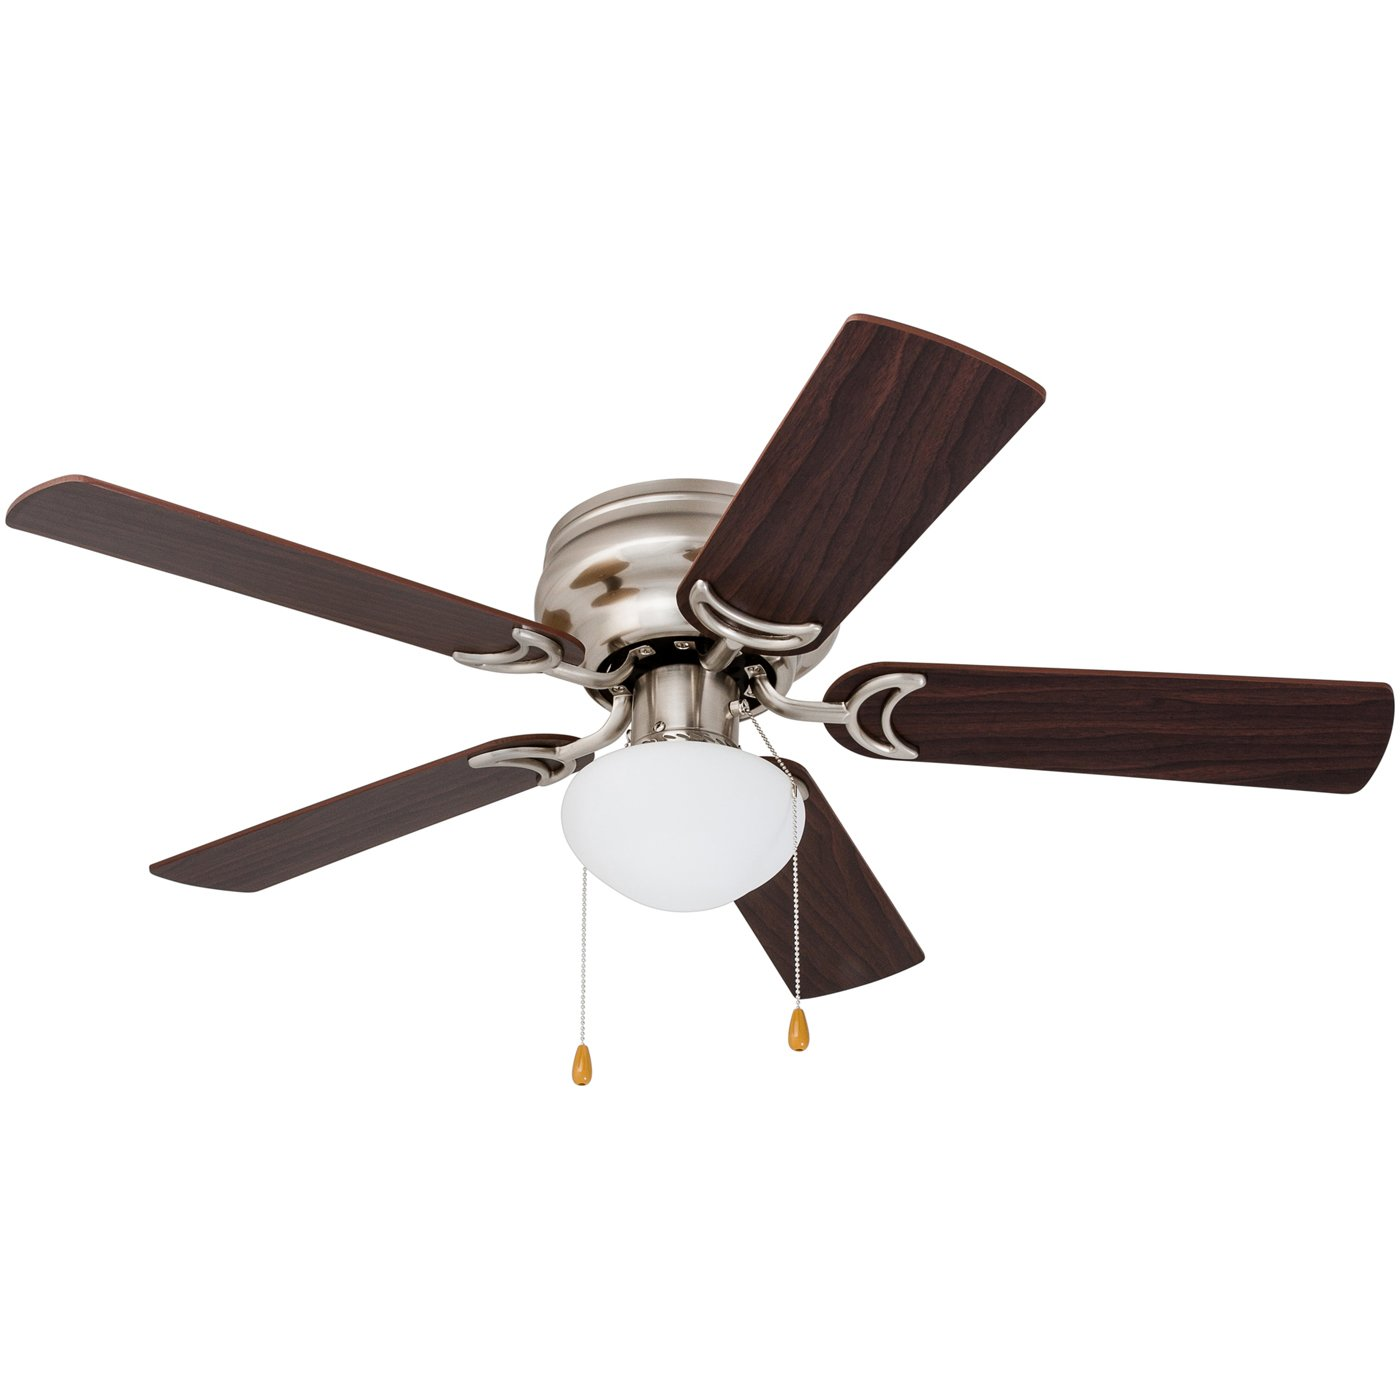 Prominence Home 80029-01 Alvina Led Globe Light Hugger/Low Profile Ceiling Fan 42 inches Satin Nickel